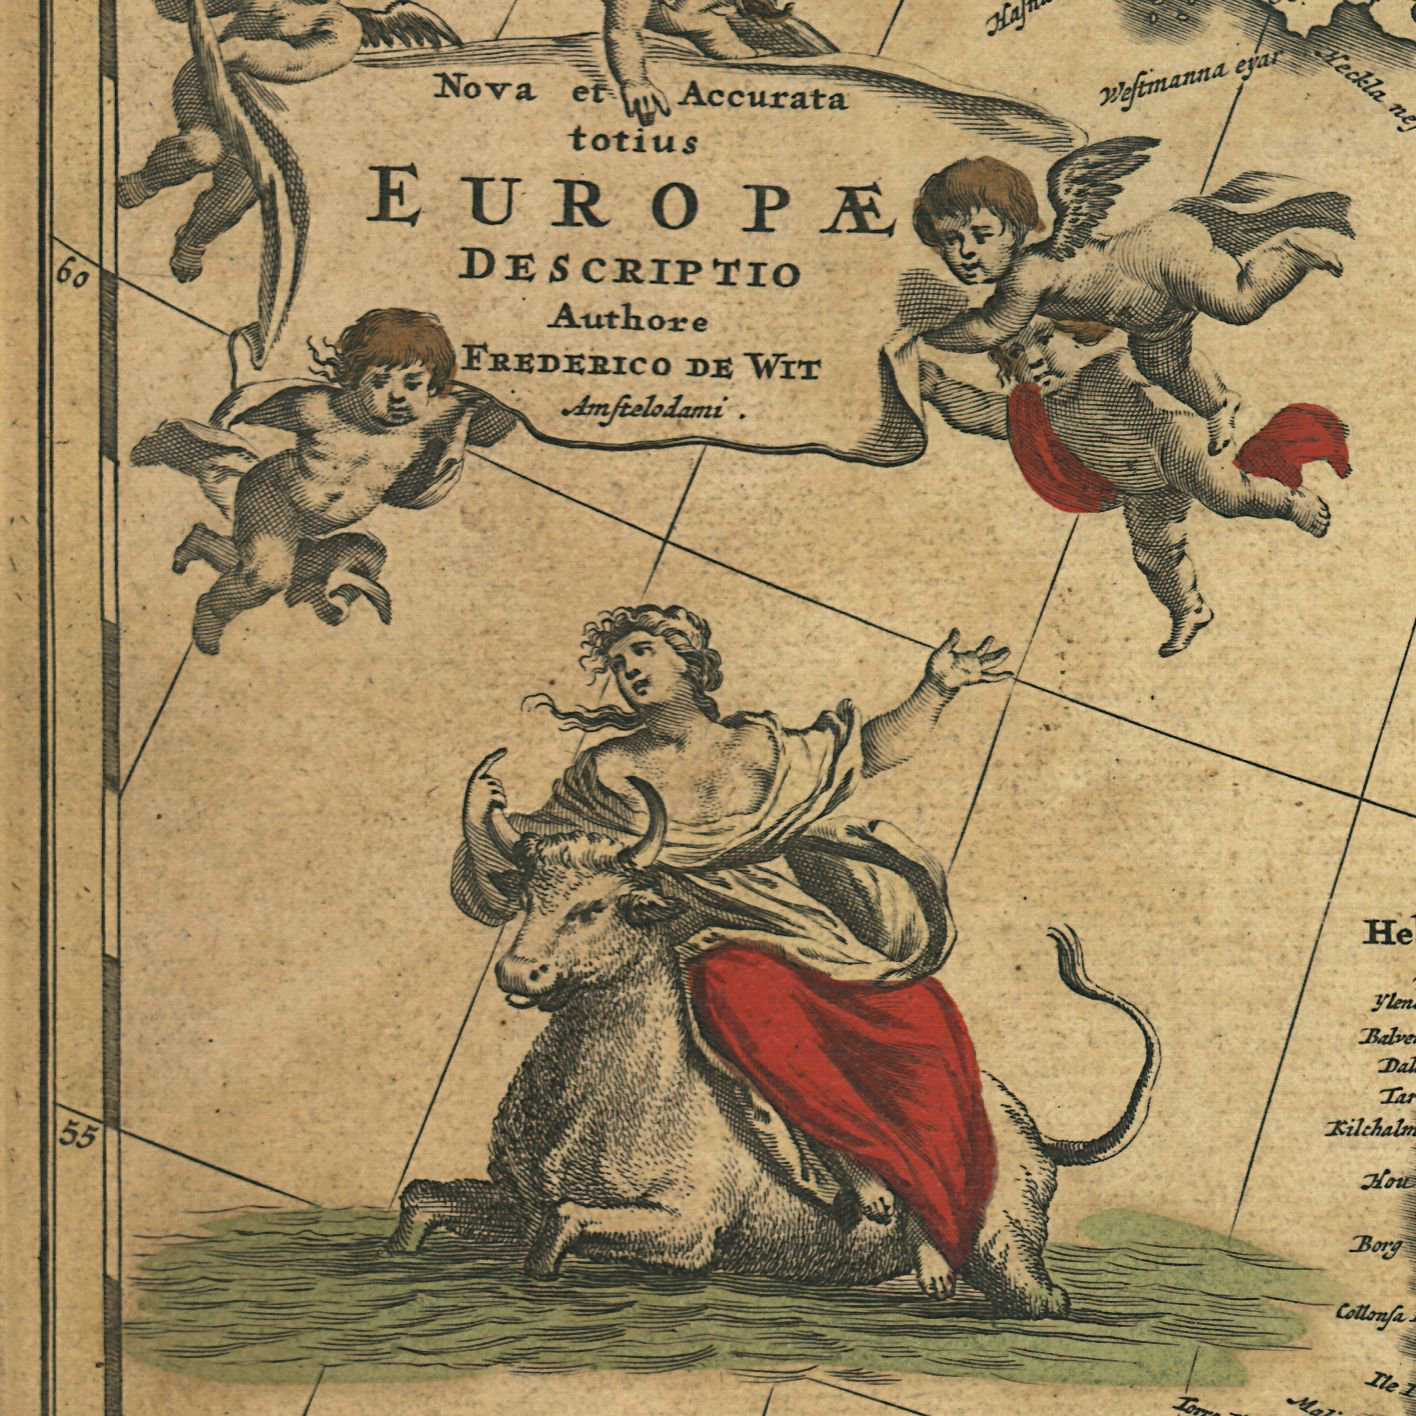 The abduction of Europa by Zeus (who transformed himself into a white bull) is depicted on this 1700 map by de Wit  https://t.co/JDkYcmXjh4 https://t.co/CHaqjnJihX